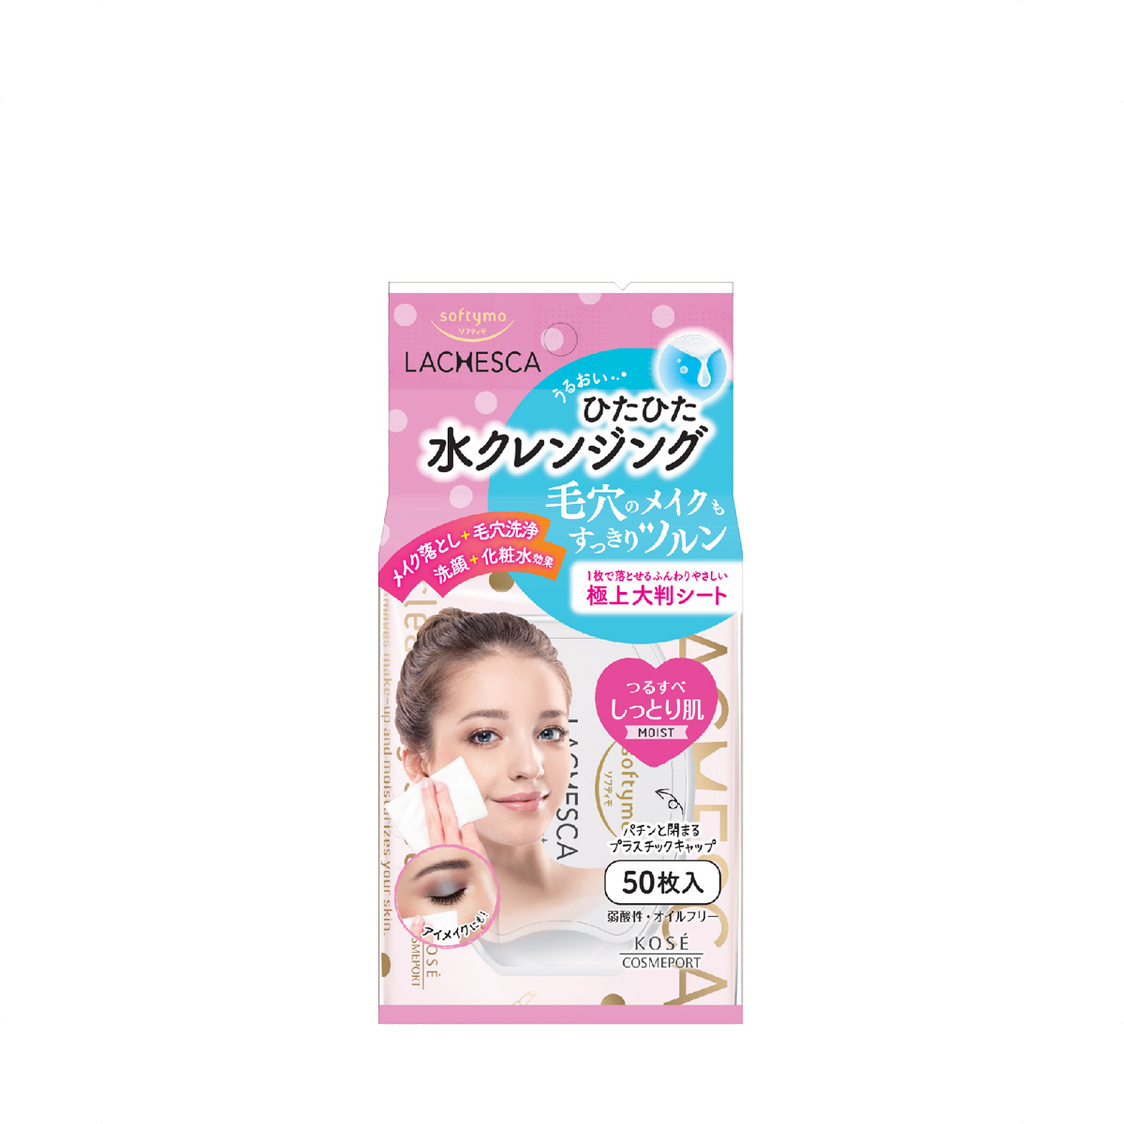 Softymo Lachesca Cleansing Sheet Moist 50s